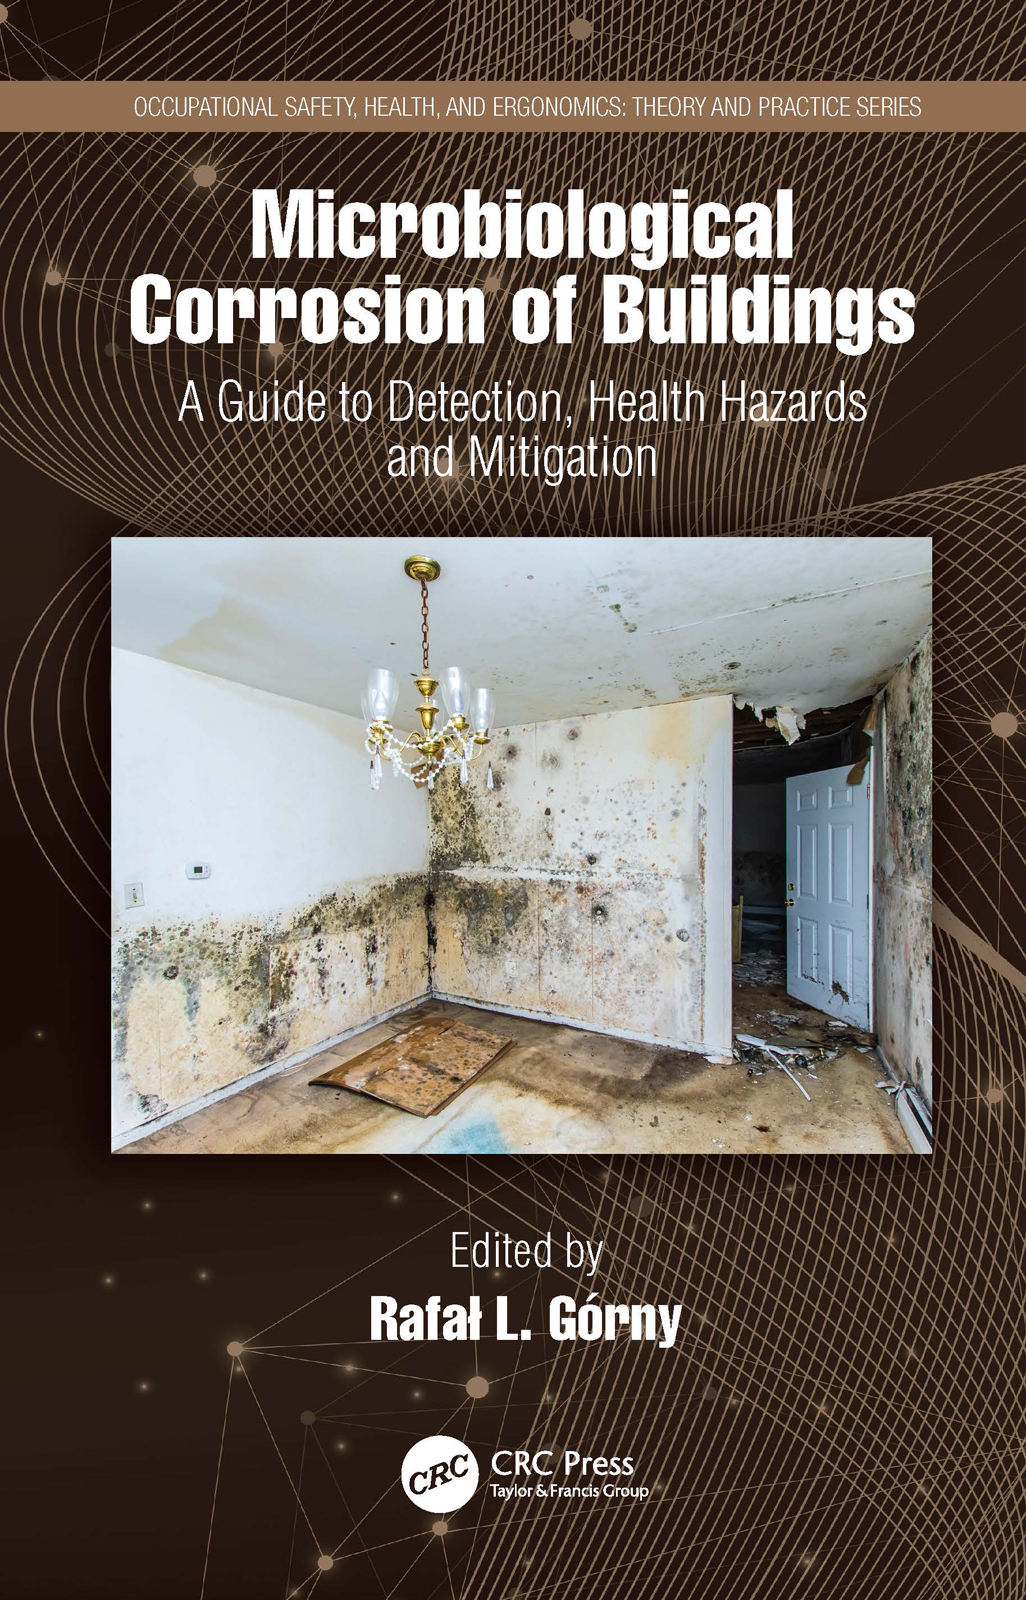 Microbiological Corrosion of Buildings